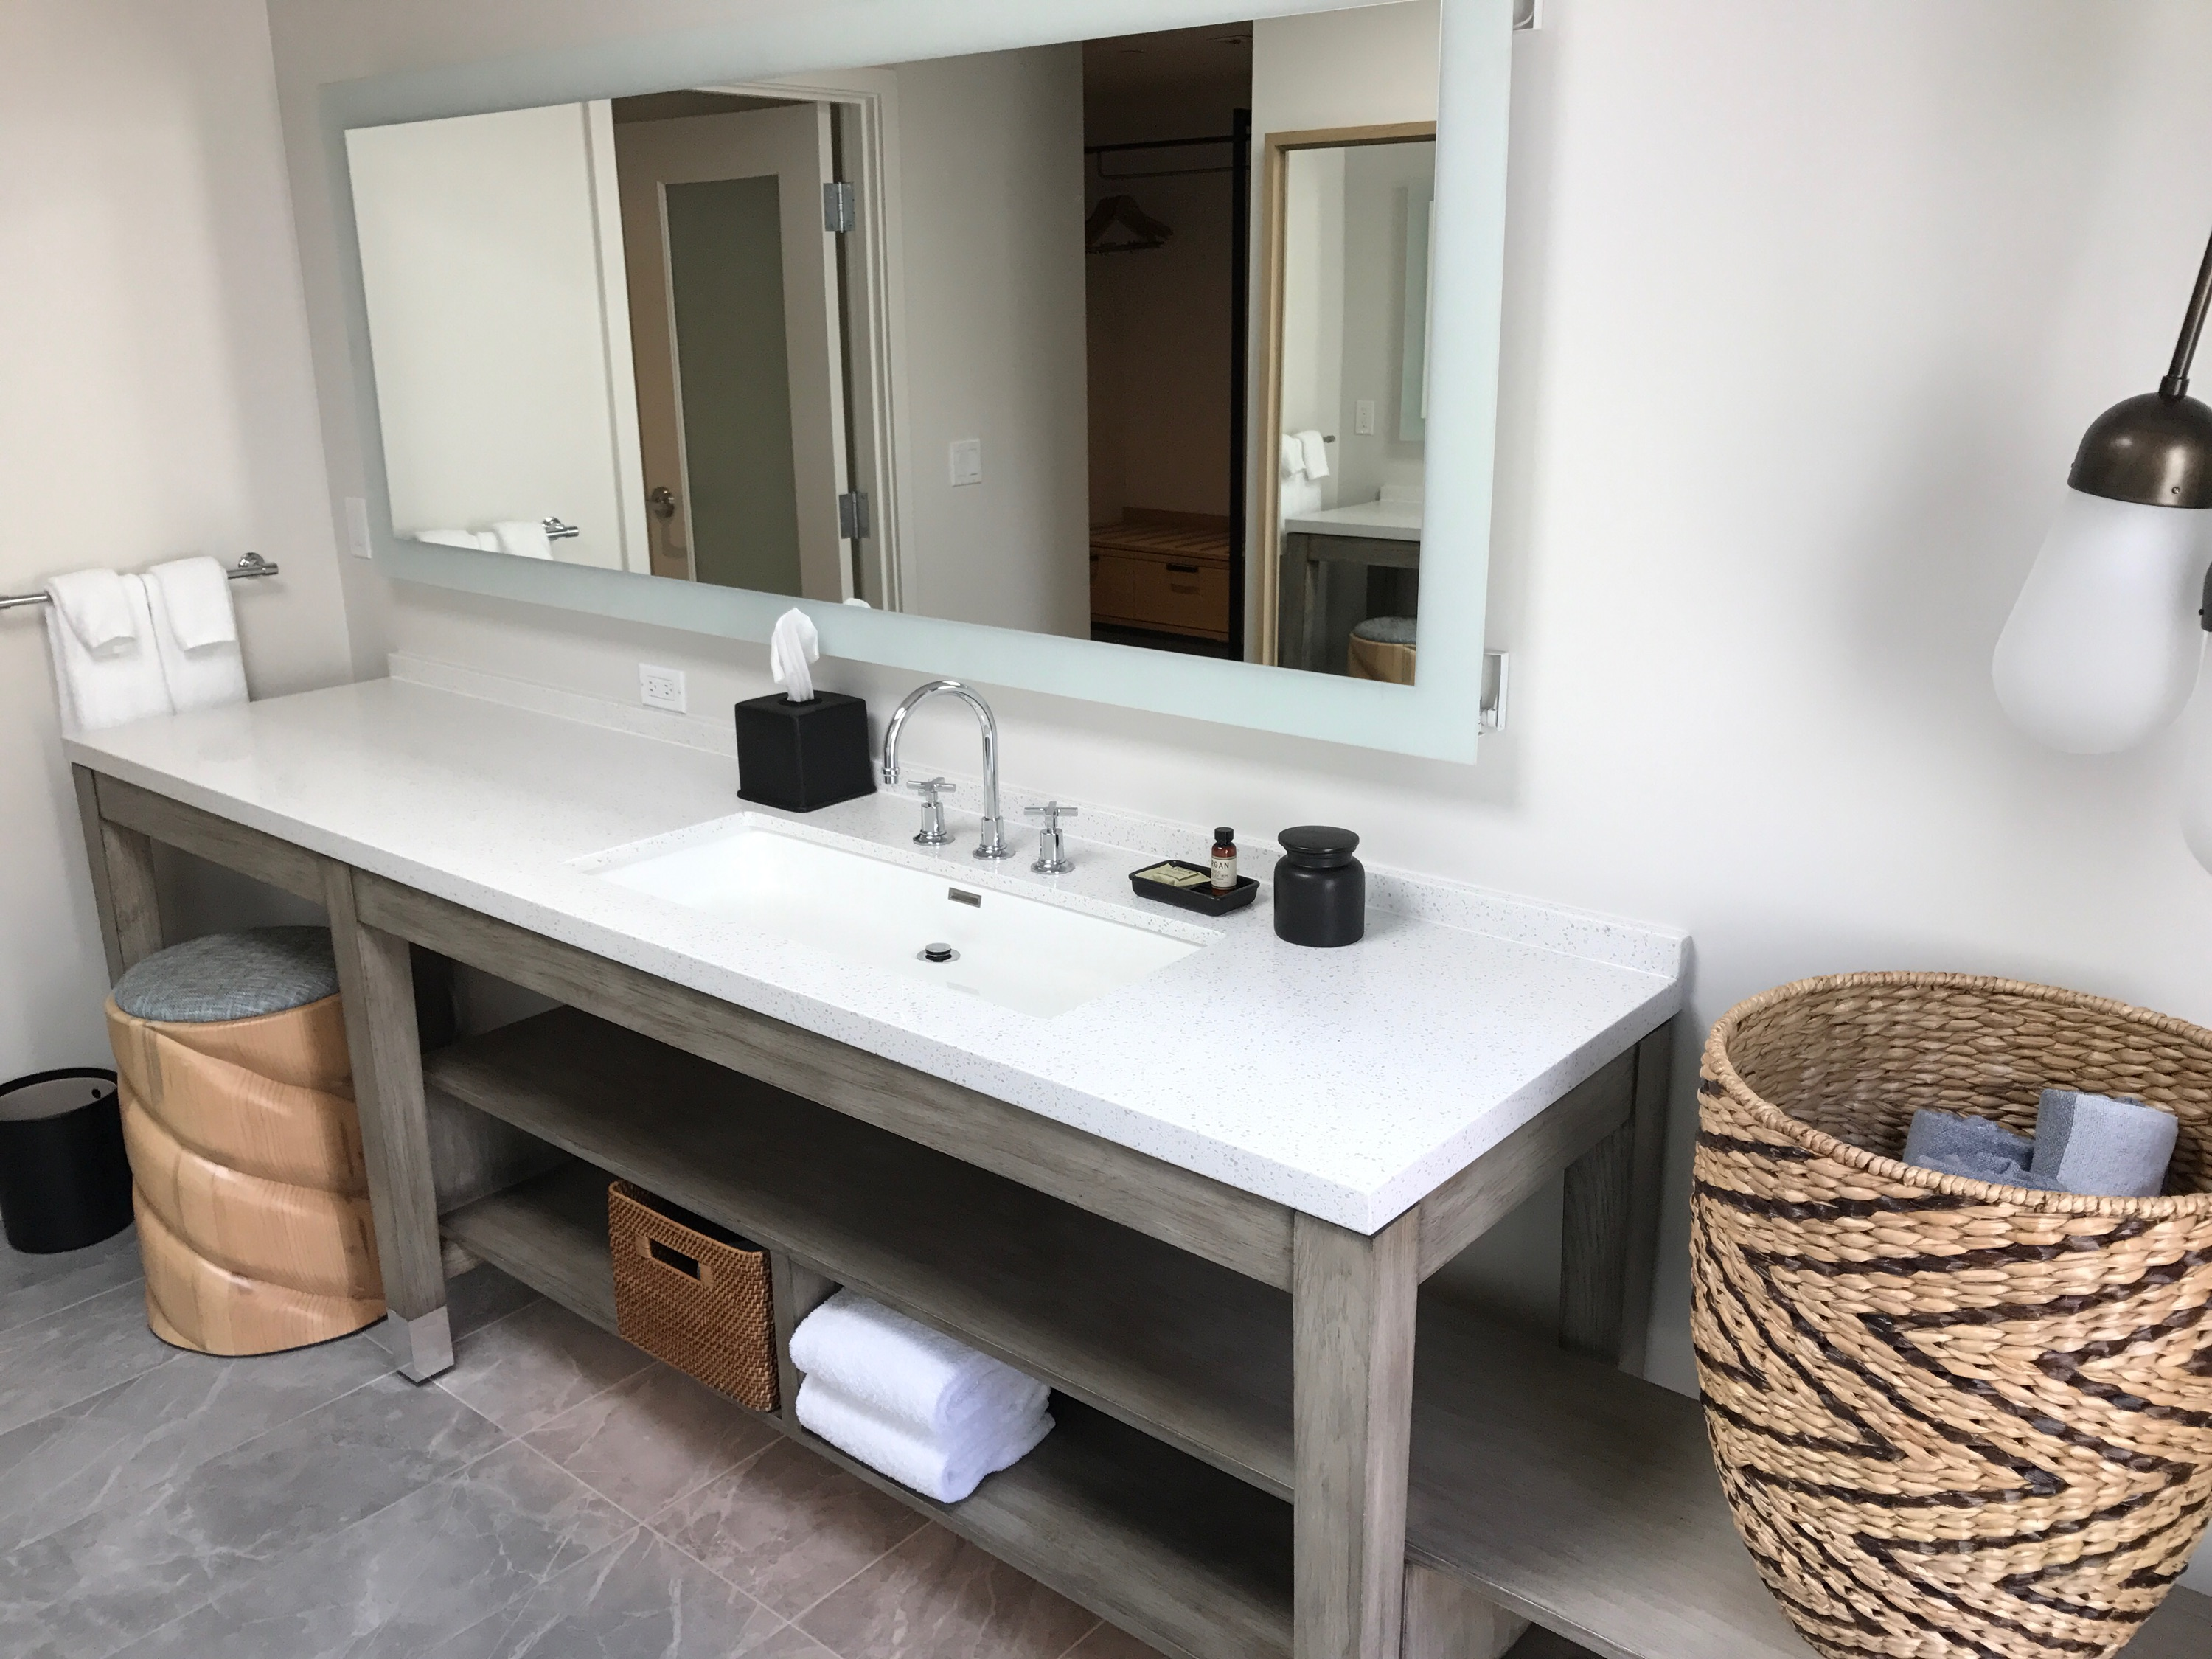 A Review of the Andaz Scottsdale   Jackson Jetsetting